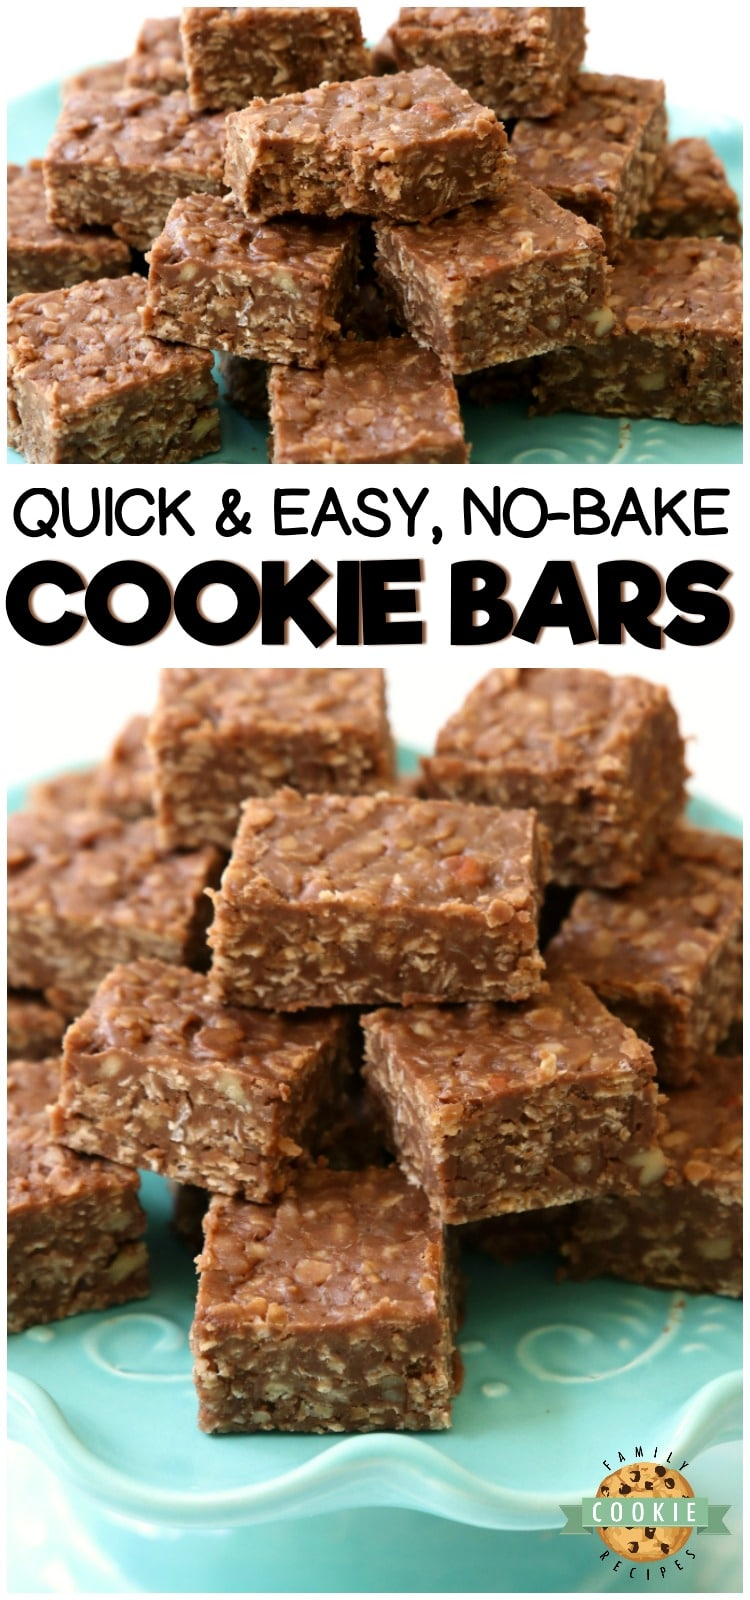 No Bake Cookie Barsrecipe is a quick variation on THE BEST no bake cookies recipe. Made with quick oats & chocolate chips, these no bake oatmeal cookiescouldn't be tastier! #nobake #cookies #chocolate #dessert #oats #recipe from FAMILY COOKIE RECIPES